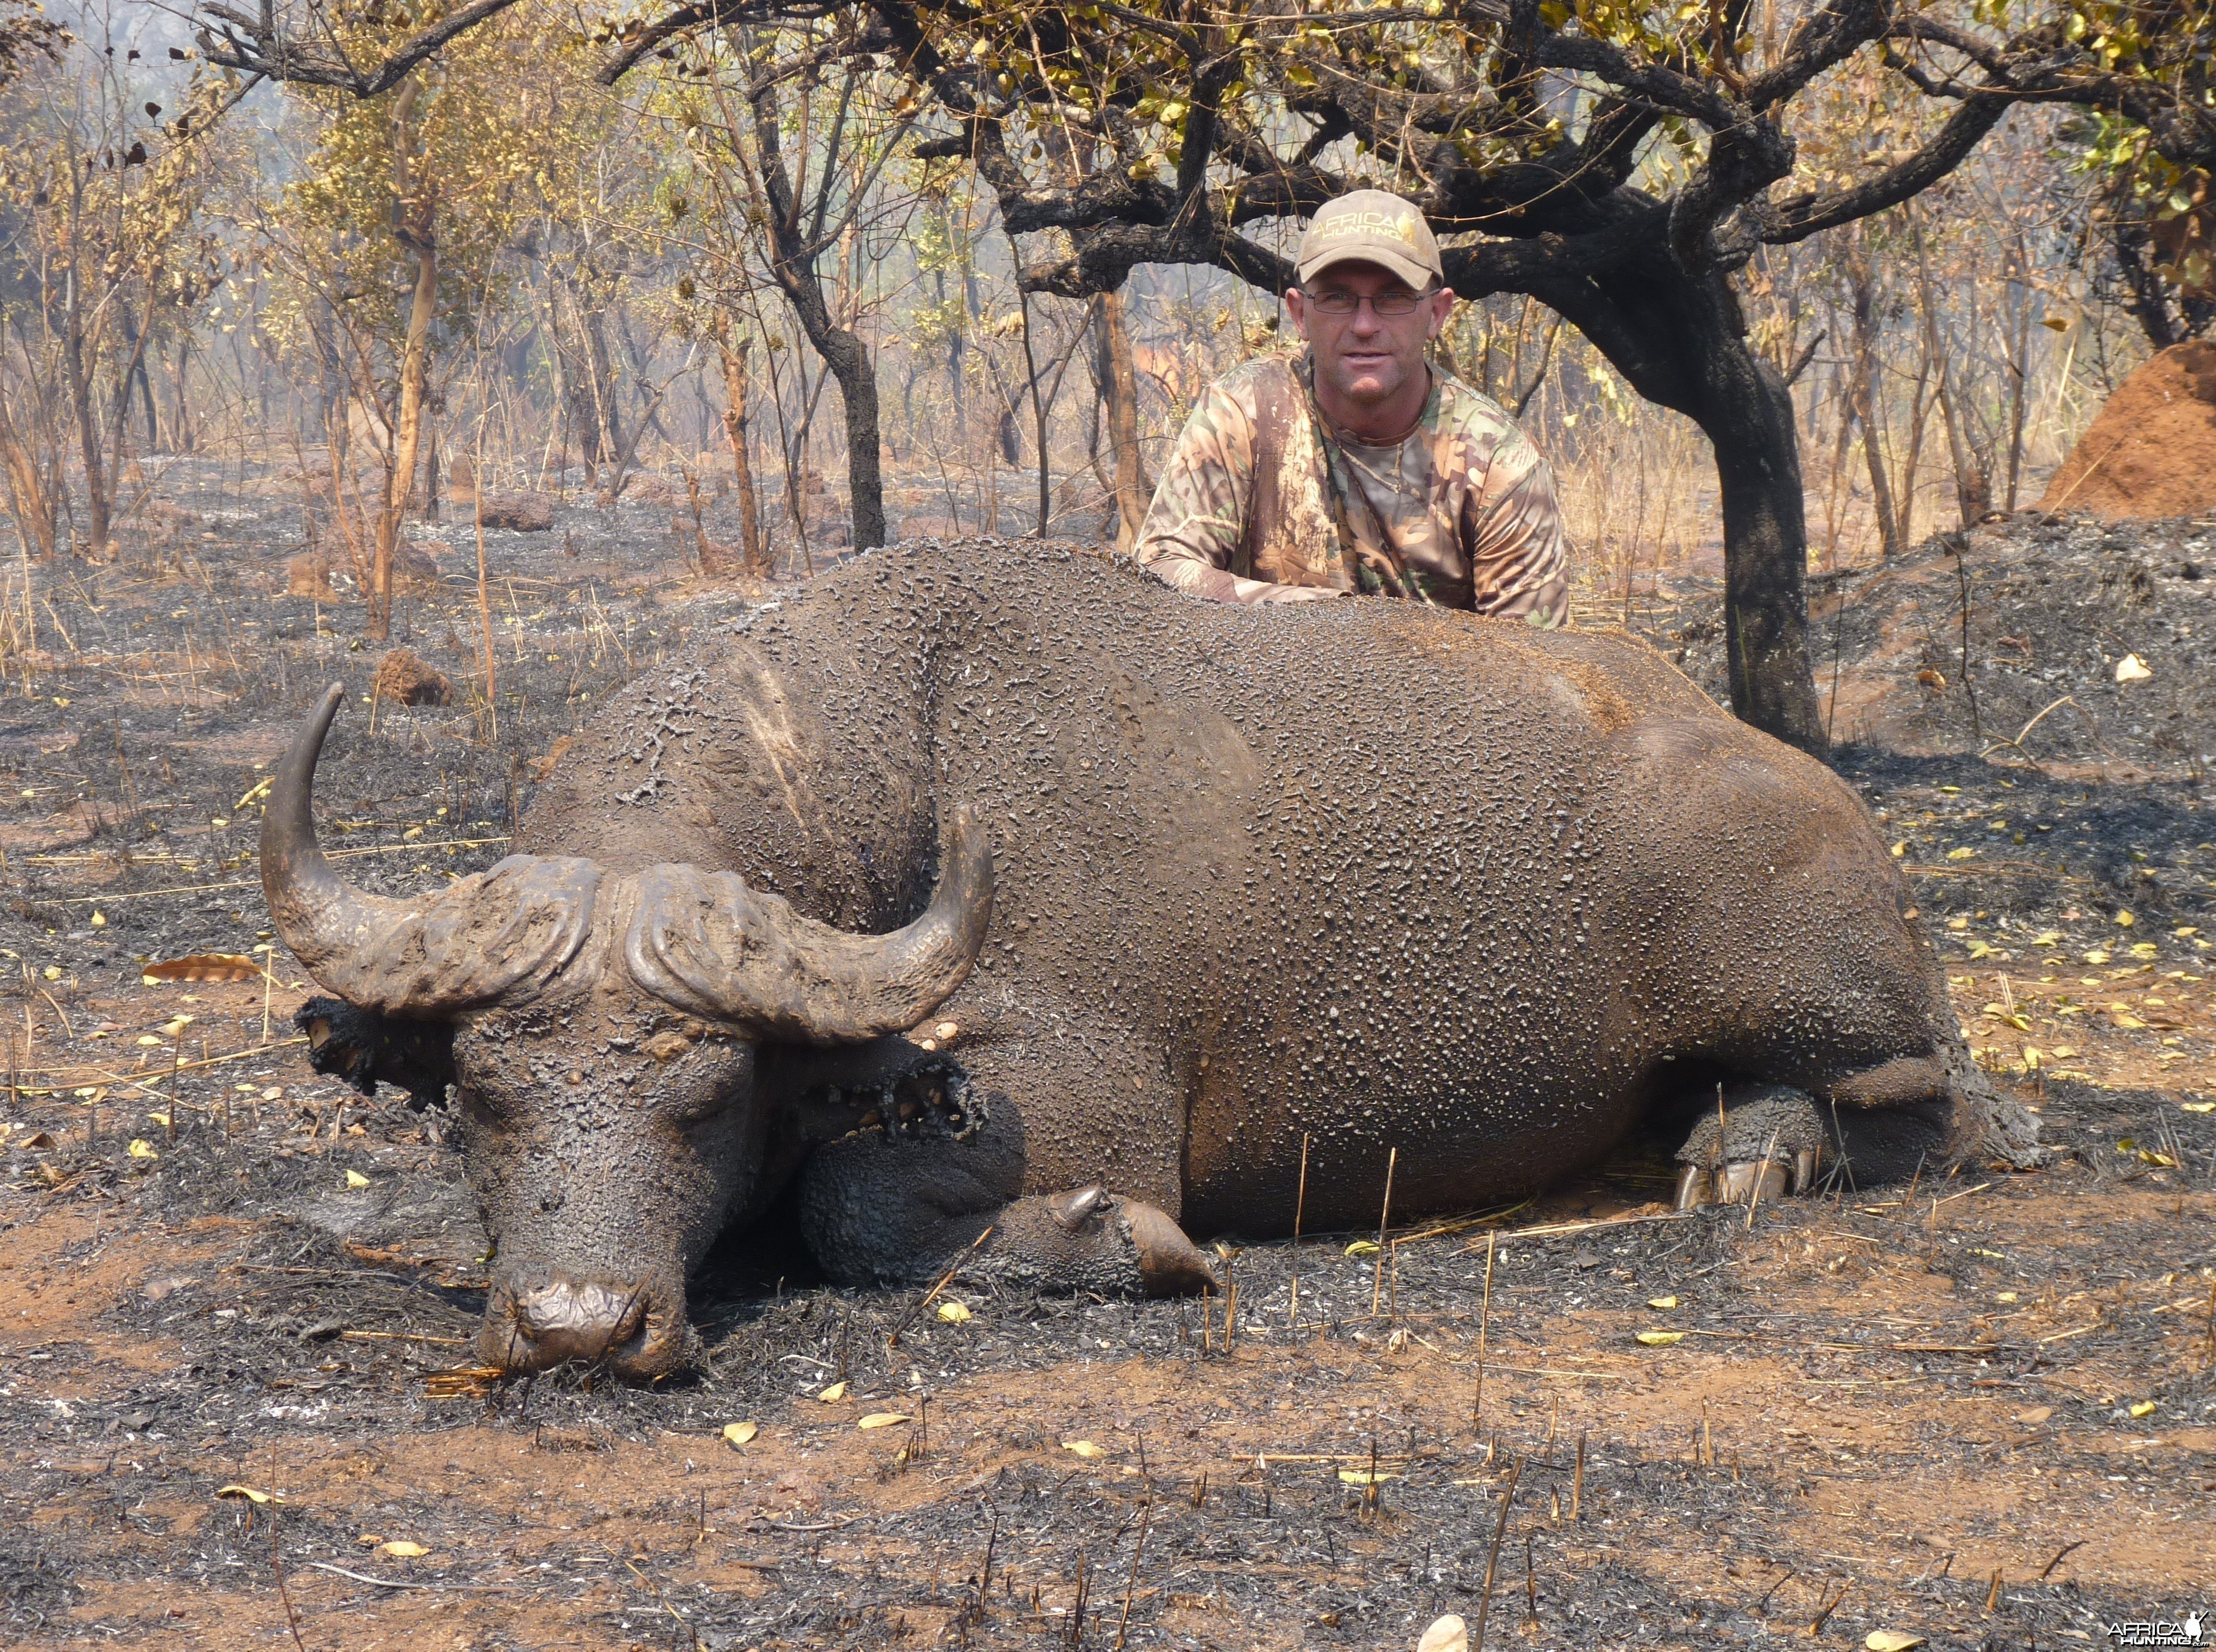 Buffalo hunted in Central African Republic